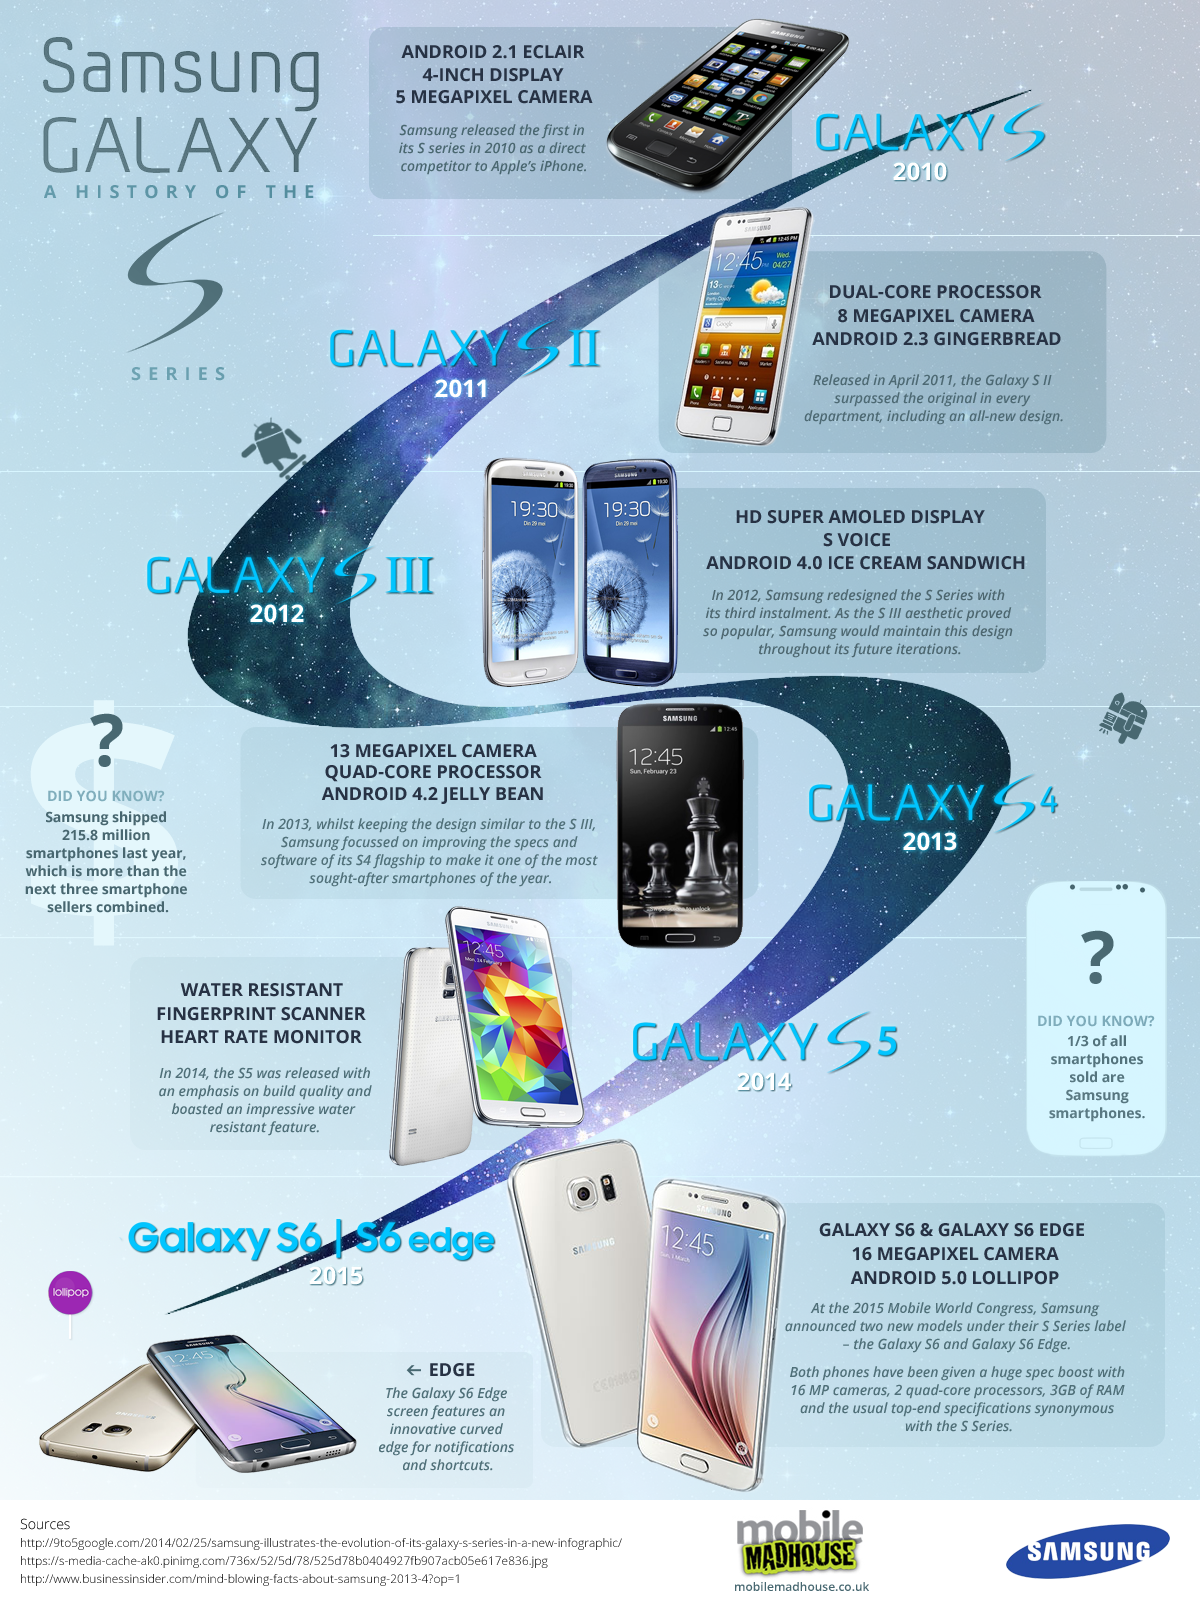 Take A Look At A Brief History Of The Galaxy S Series From